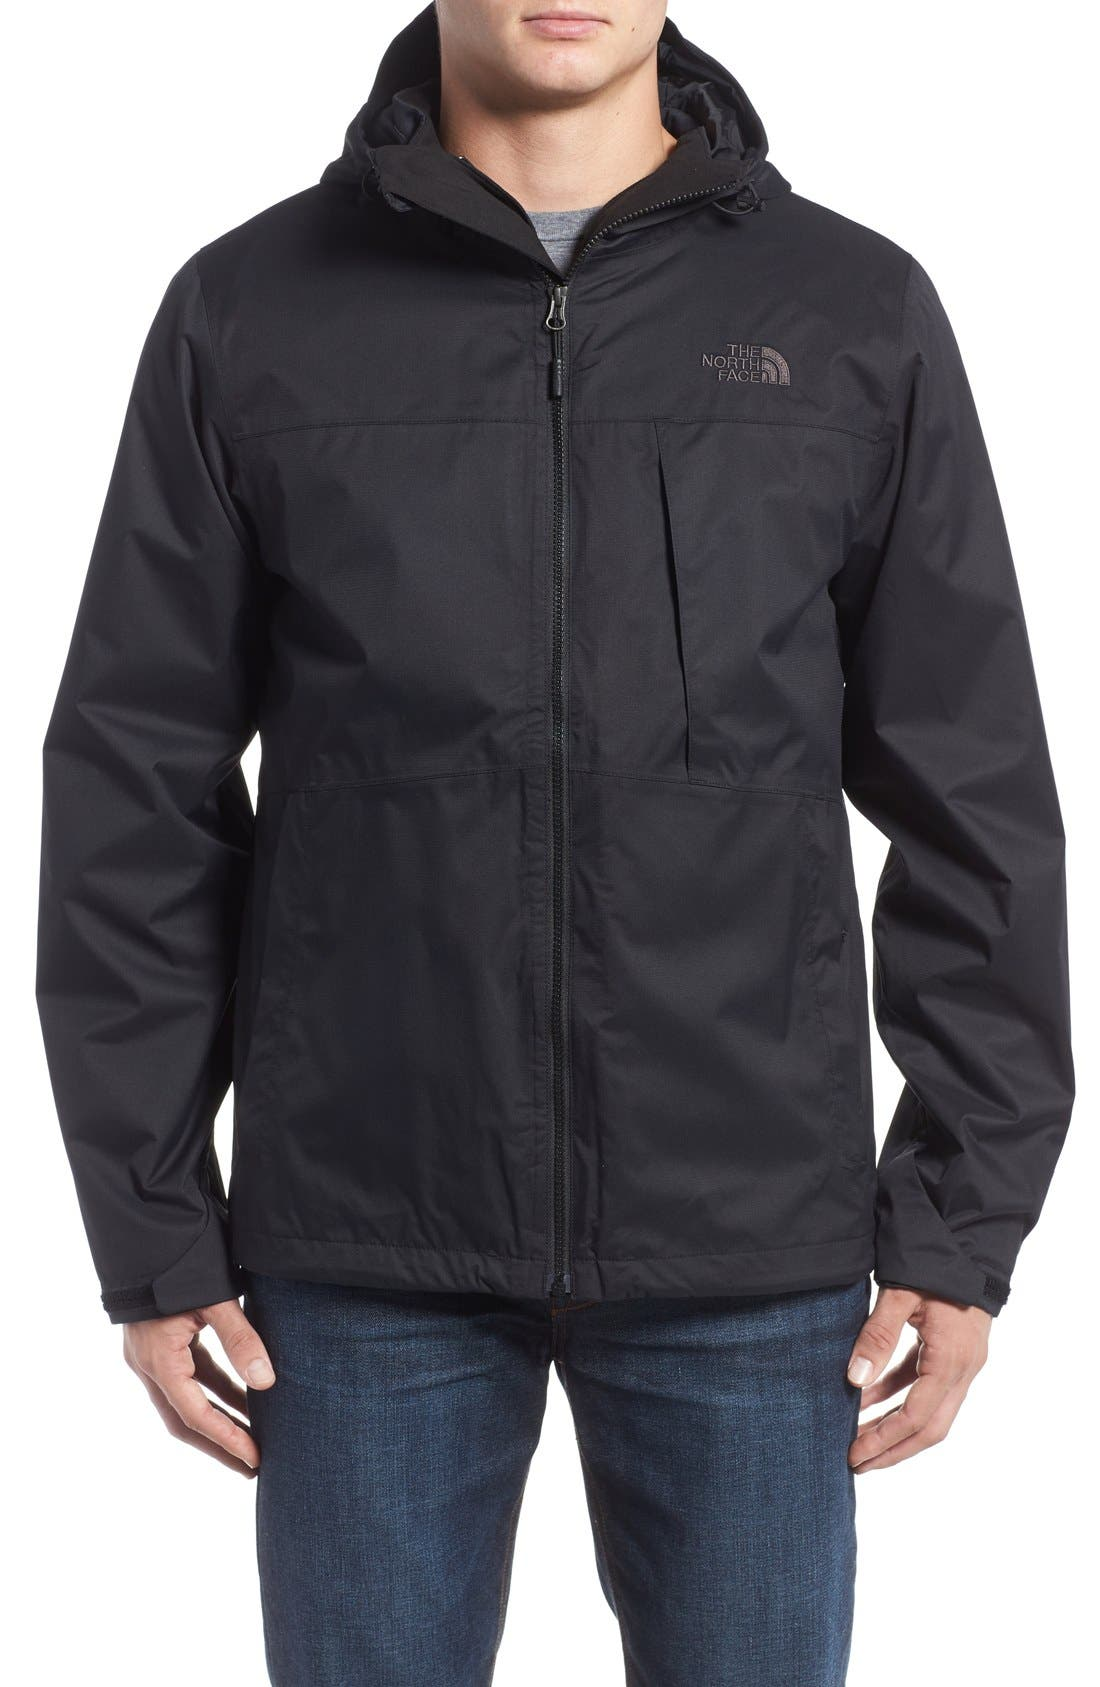 The North Face 'Arrowood' TriClimate® 3-in-1 Jacket